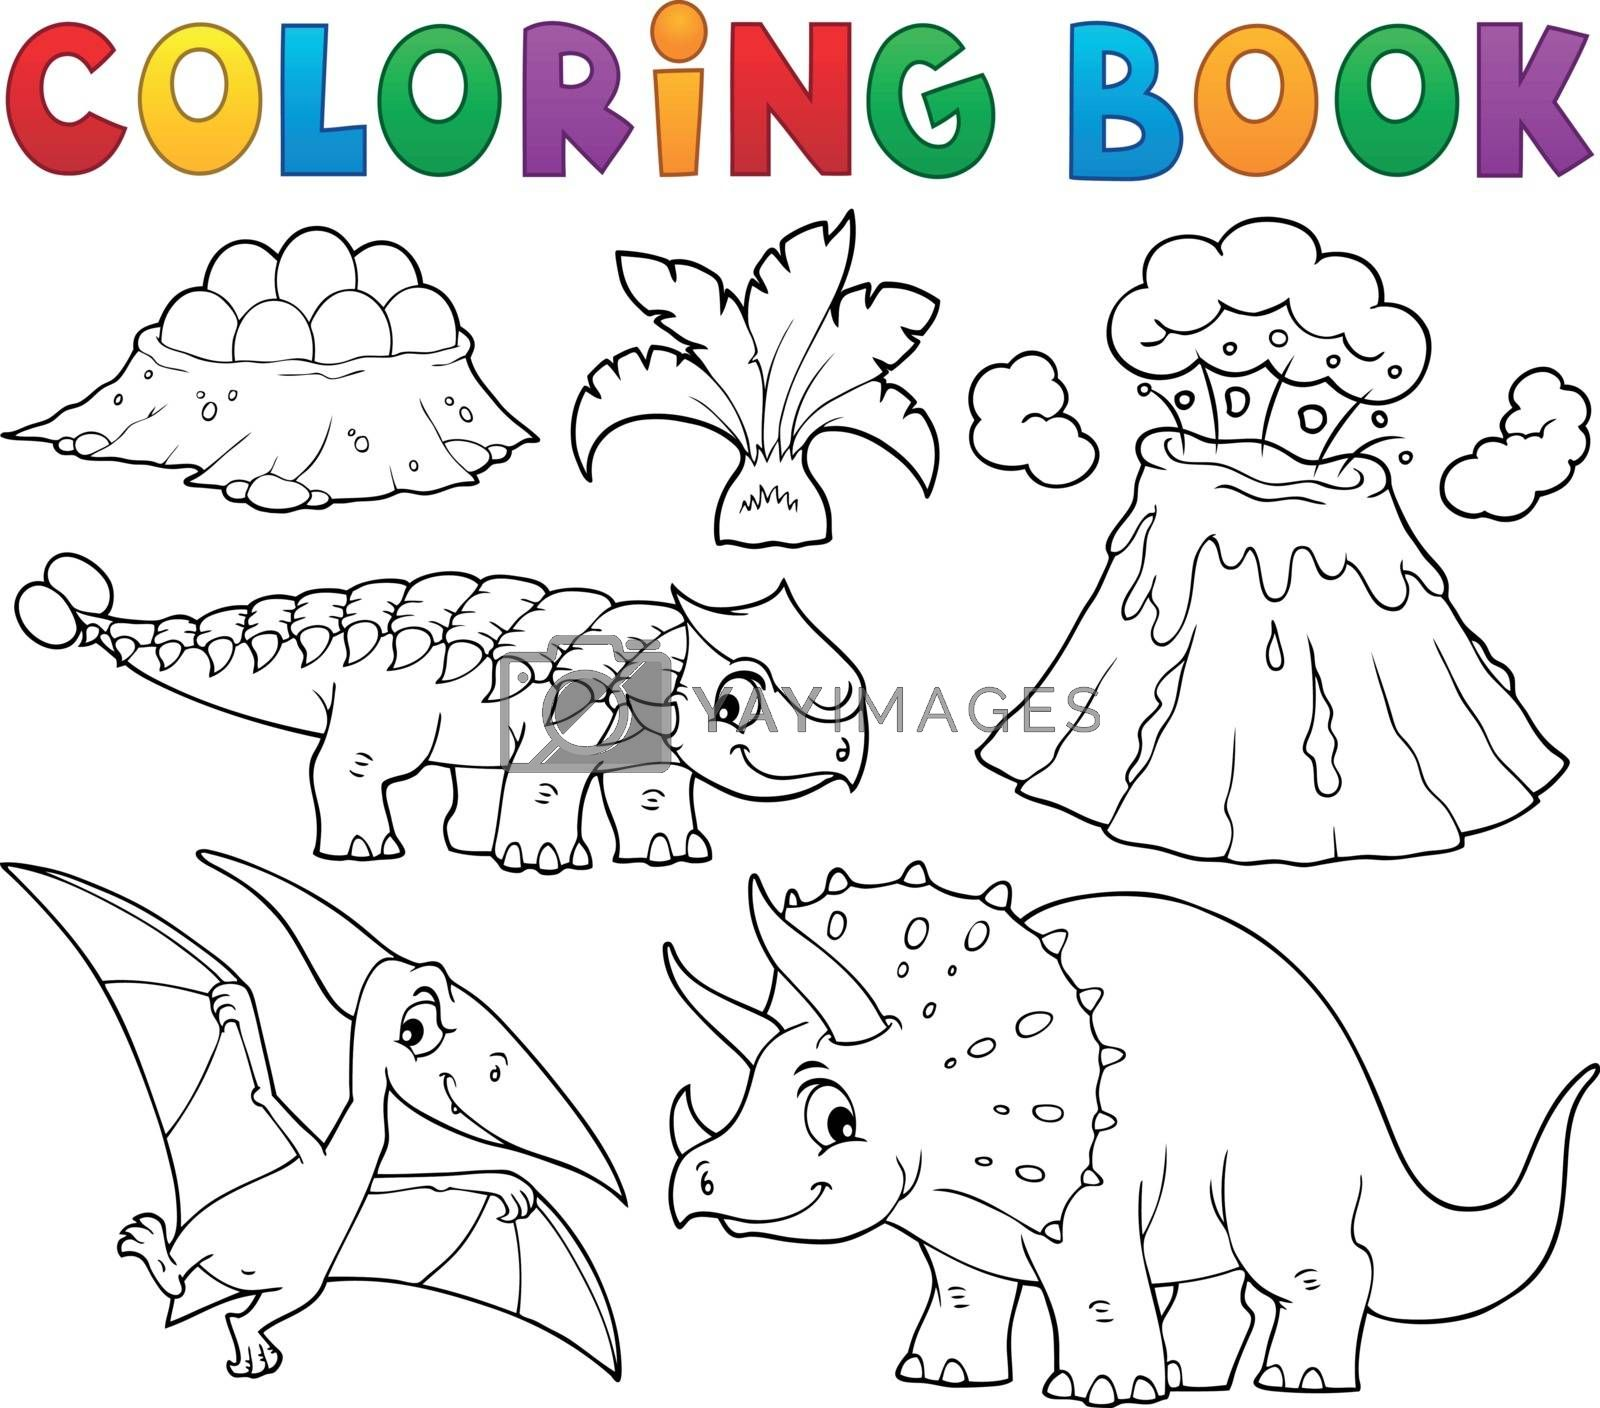 Coloring book dinosaur subject image 5 - eps10 vector illustration.